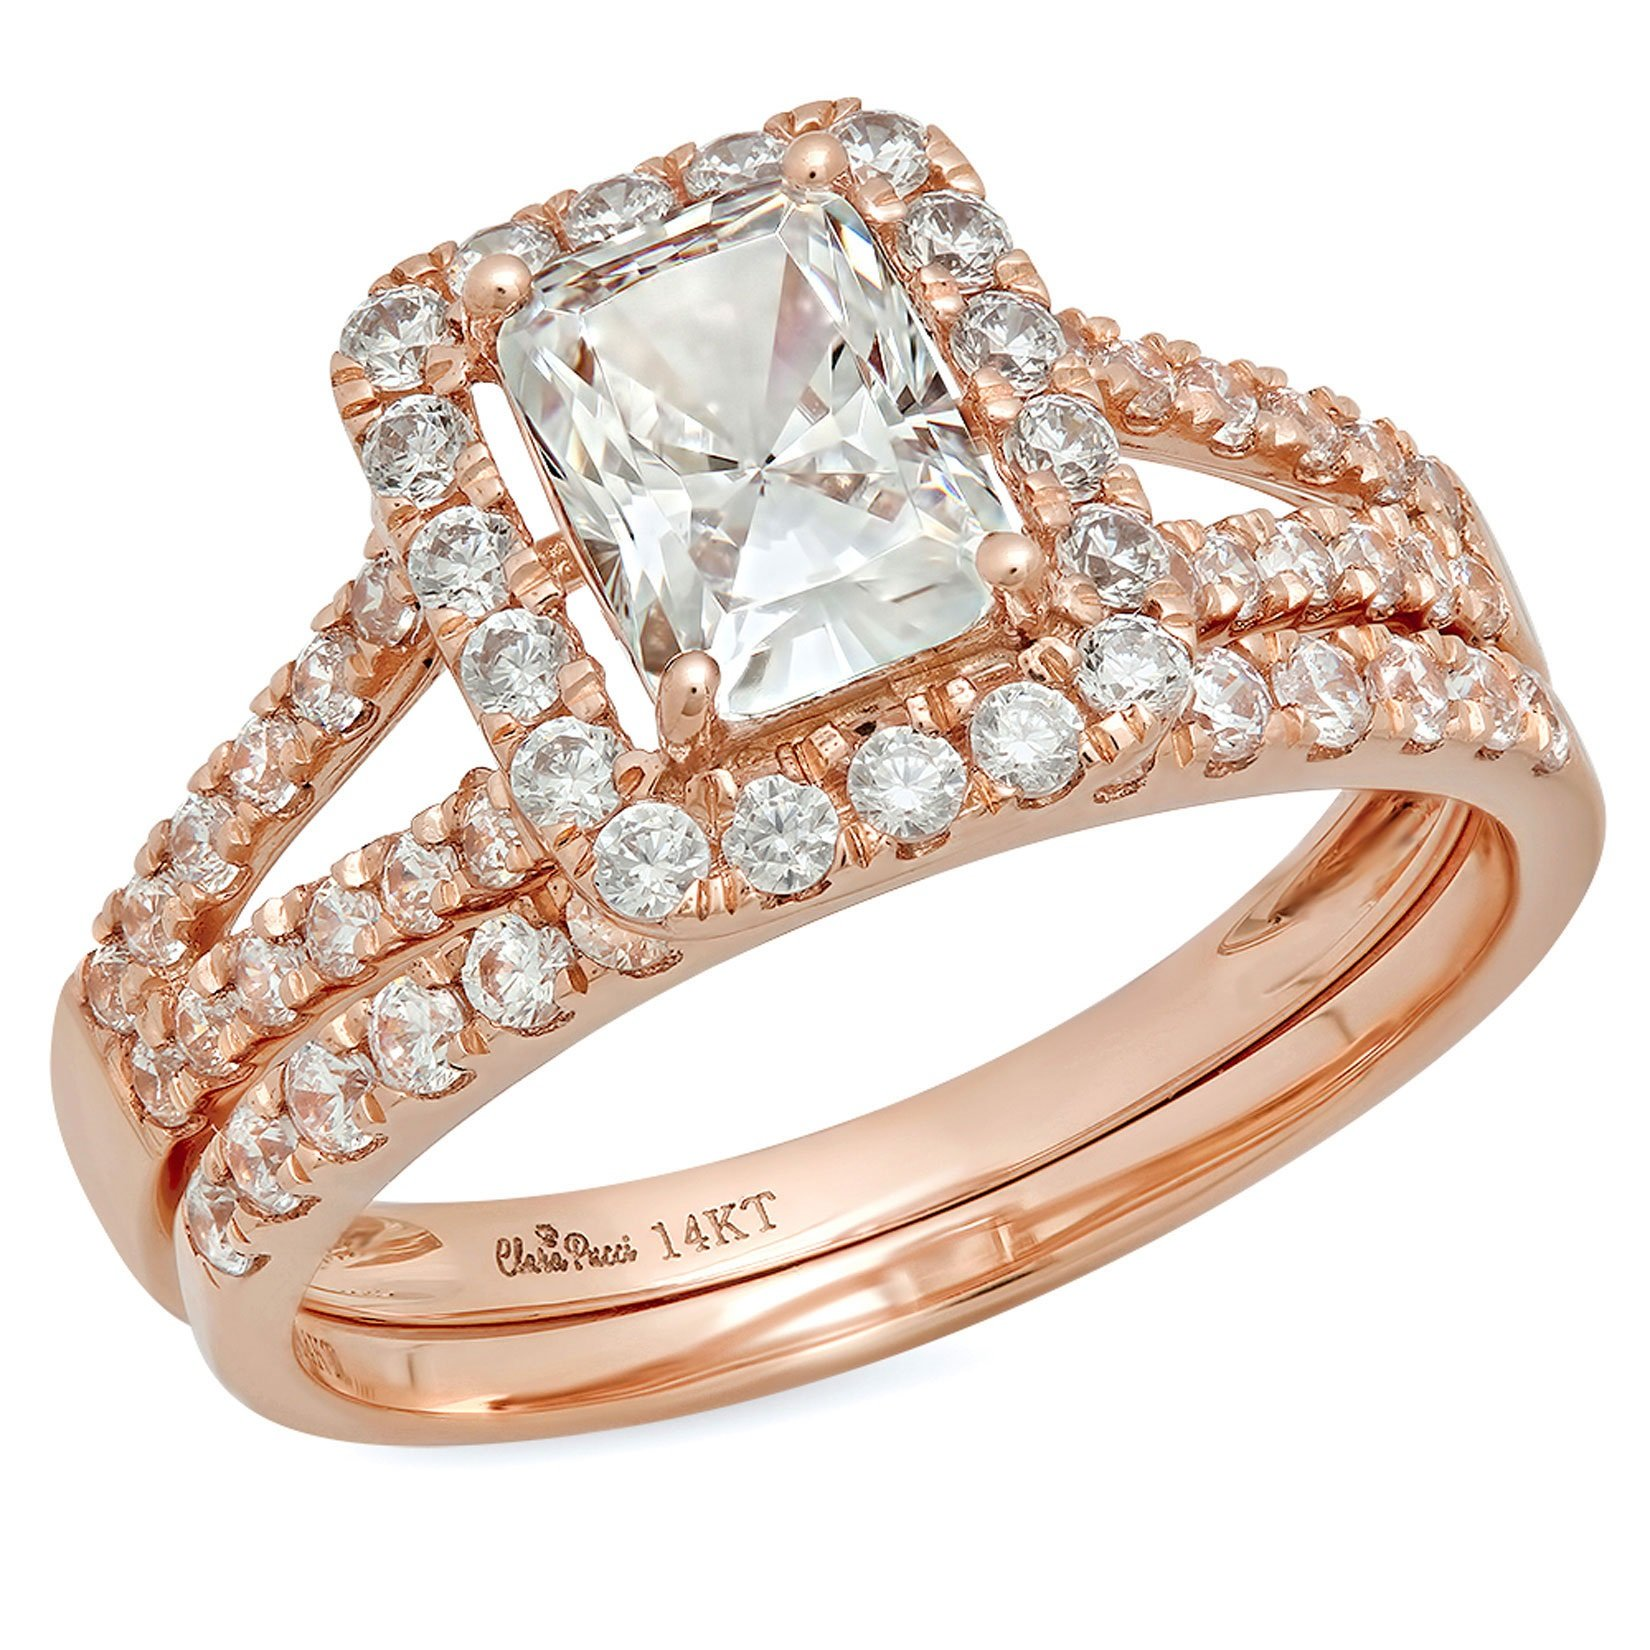 Clara Pucci 1.5 CT Emerald Cut Pave Halo Bridal Engagement Wedding Ring band set 14k Rose Gold, Size 8.5